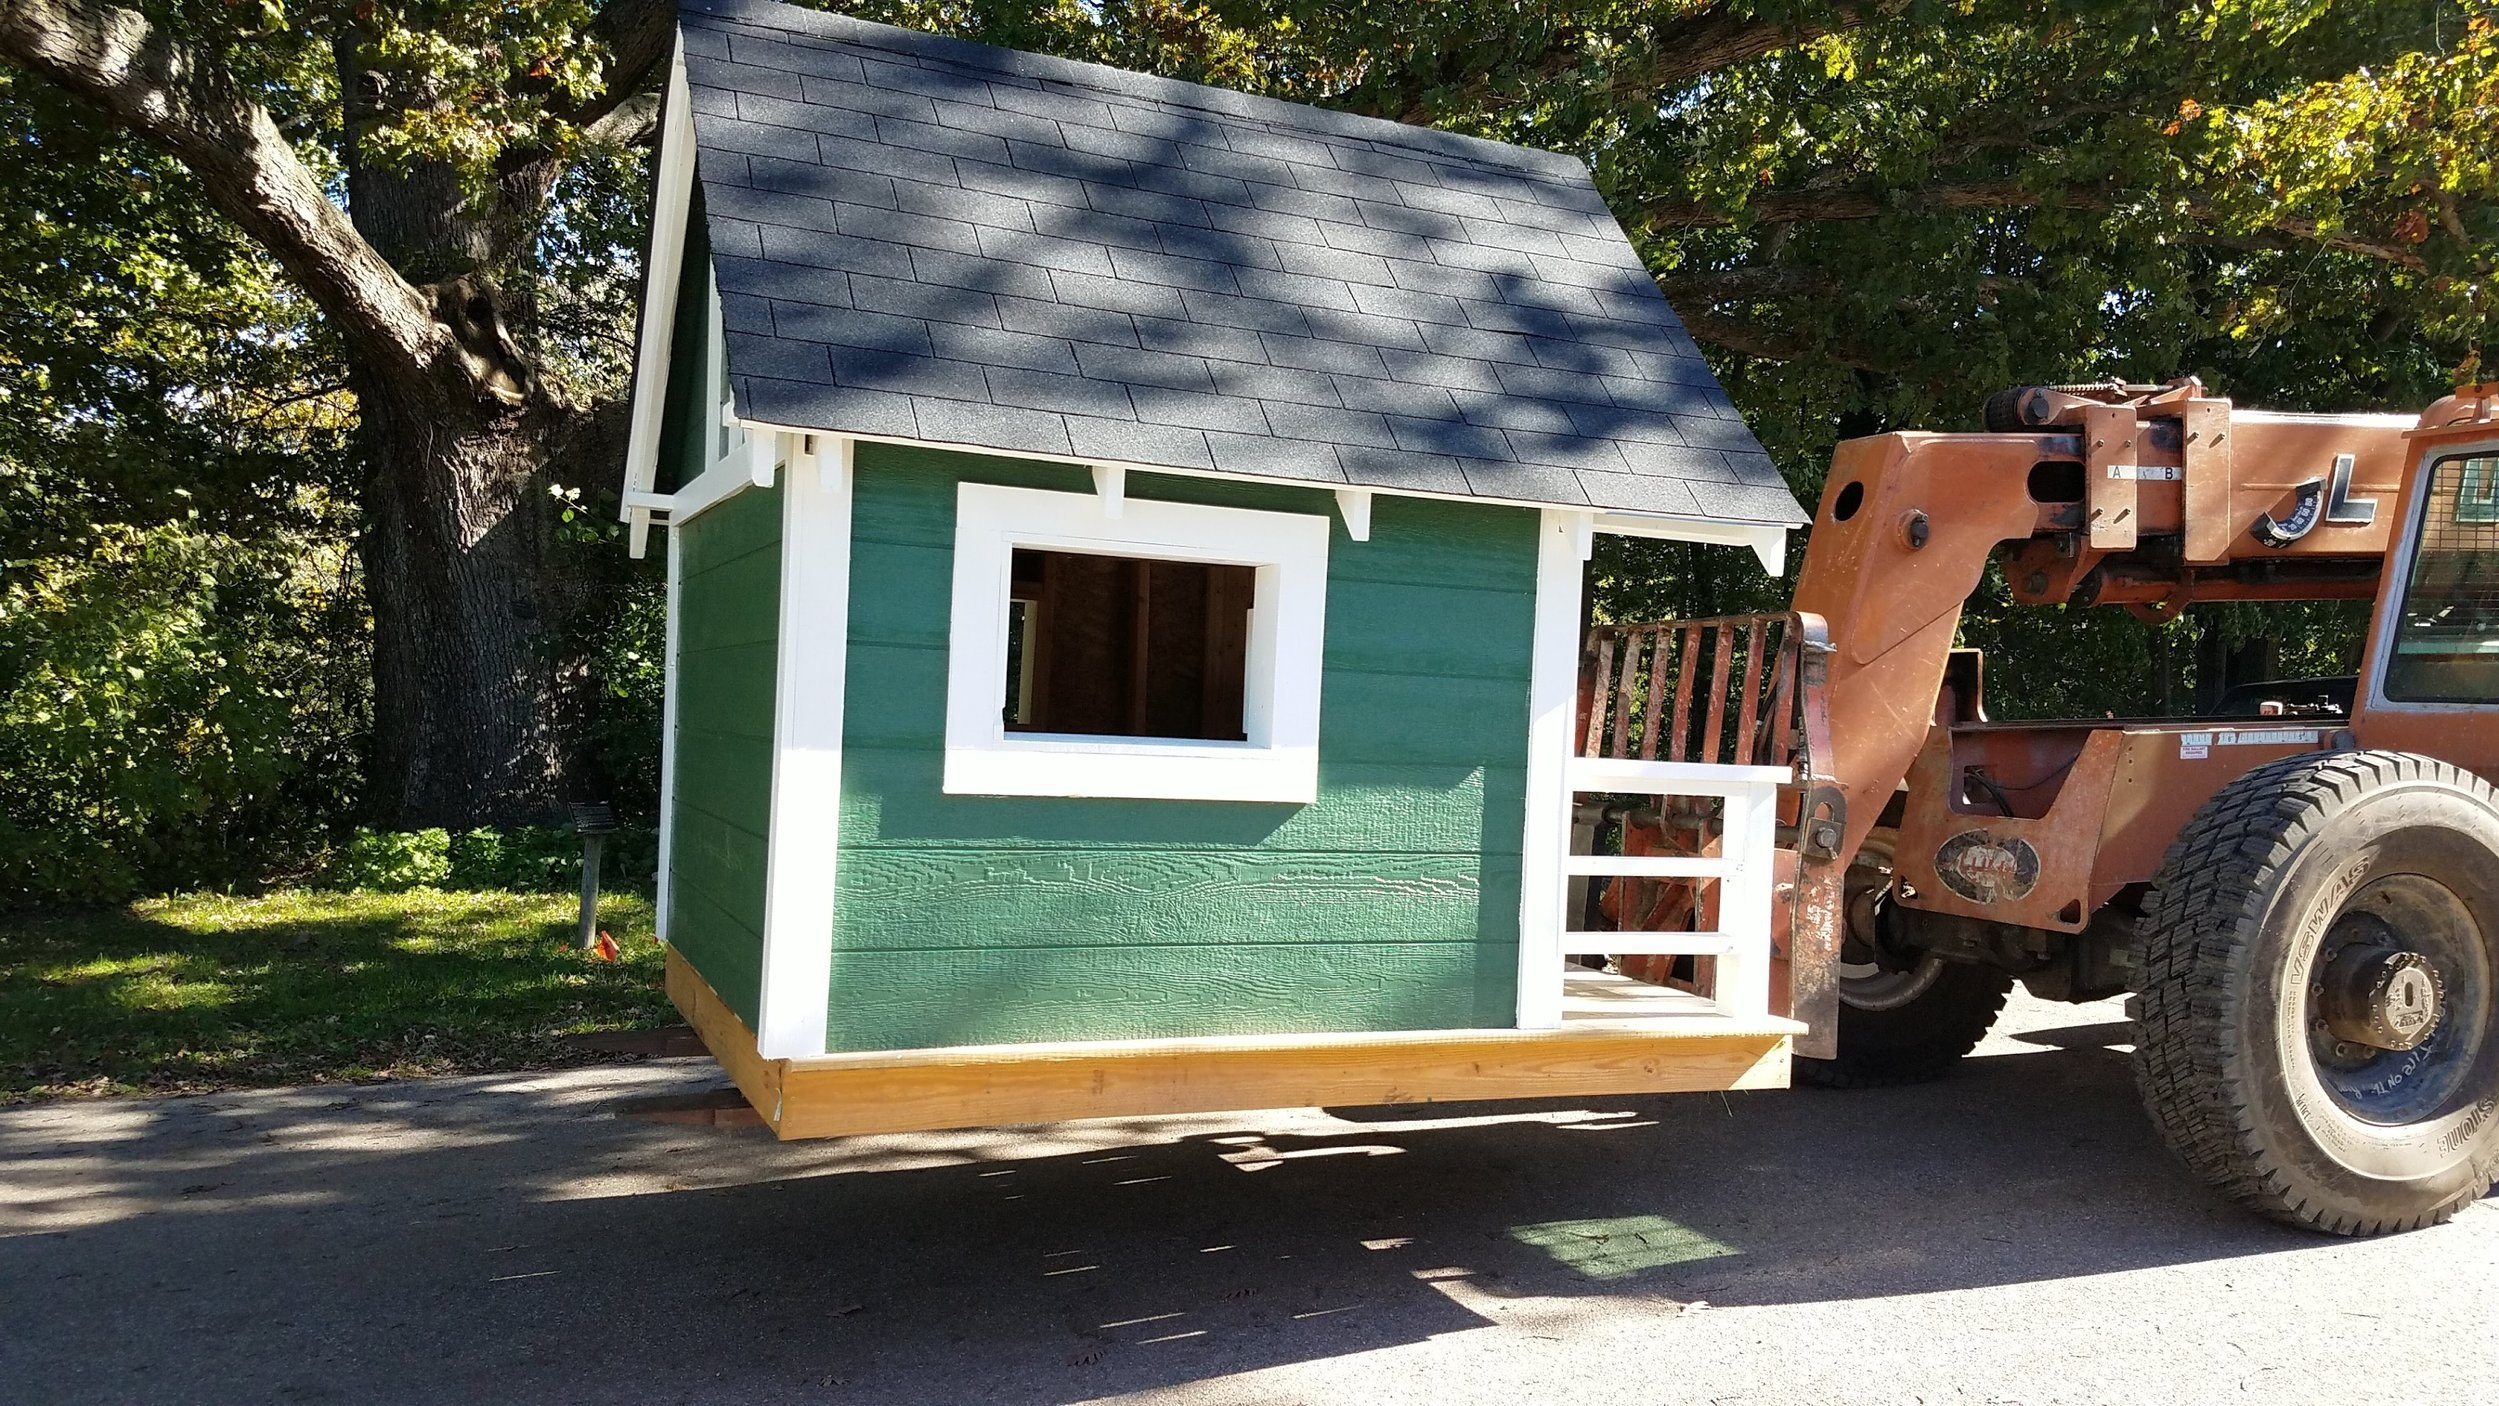 Built by the kids in 2019 to help raise money for building a tiny house for a stranger in need.